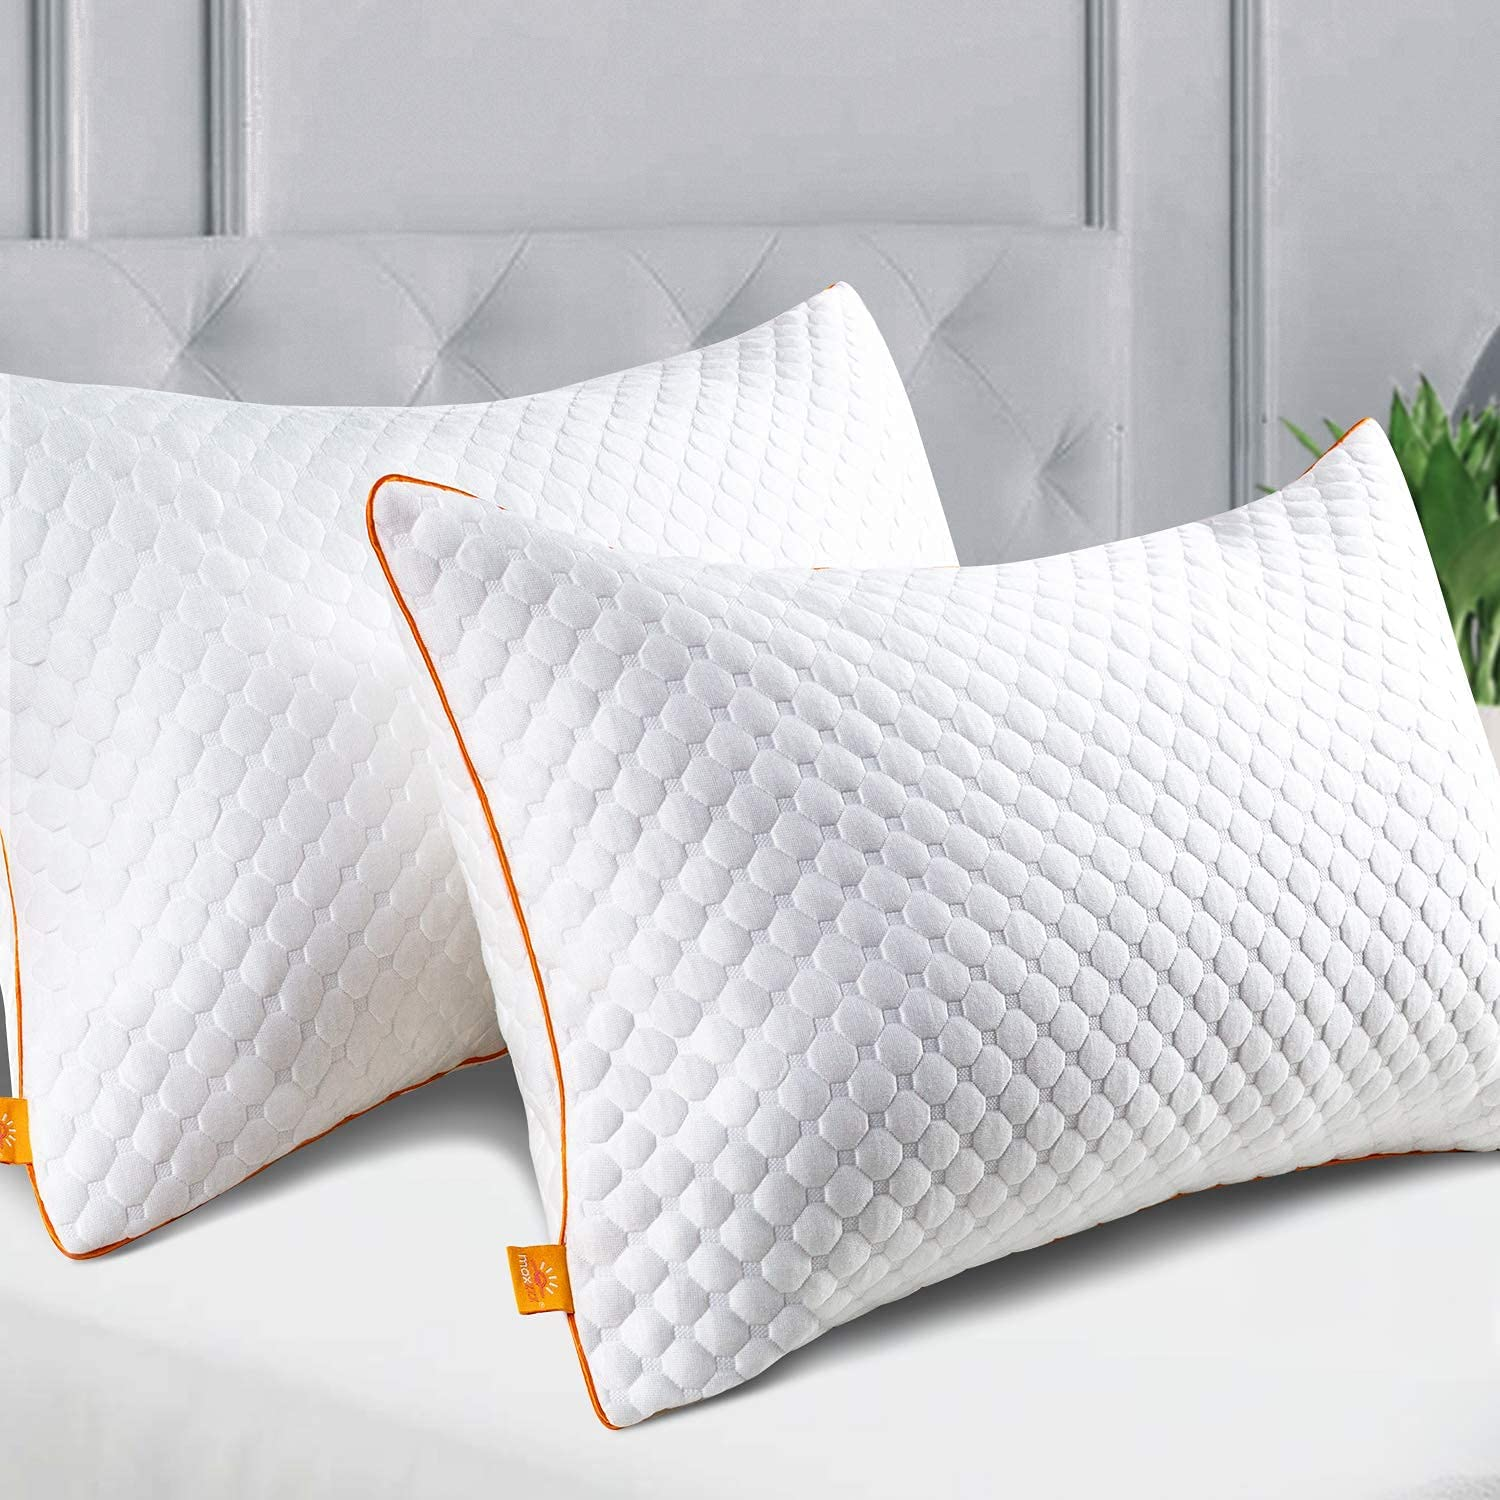 Maxzzz Bed Dallas Mall Pillows of 2 Standa Sleeping for Bamboo Pack Under blast sales